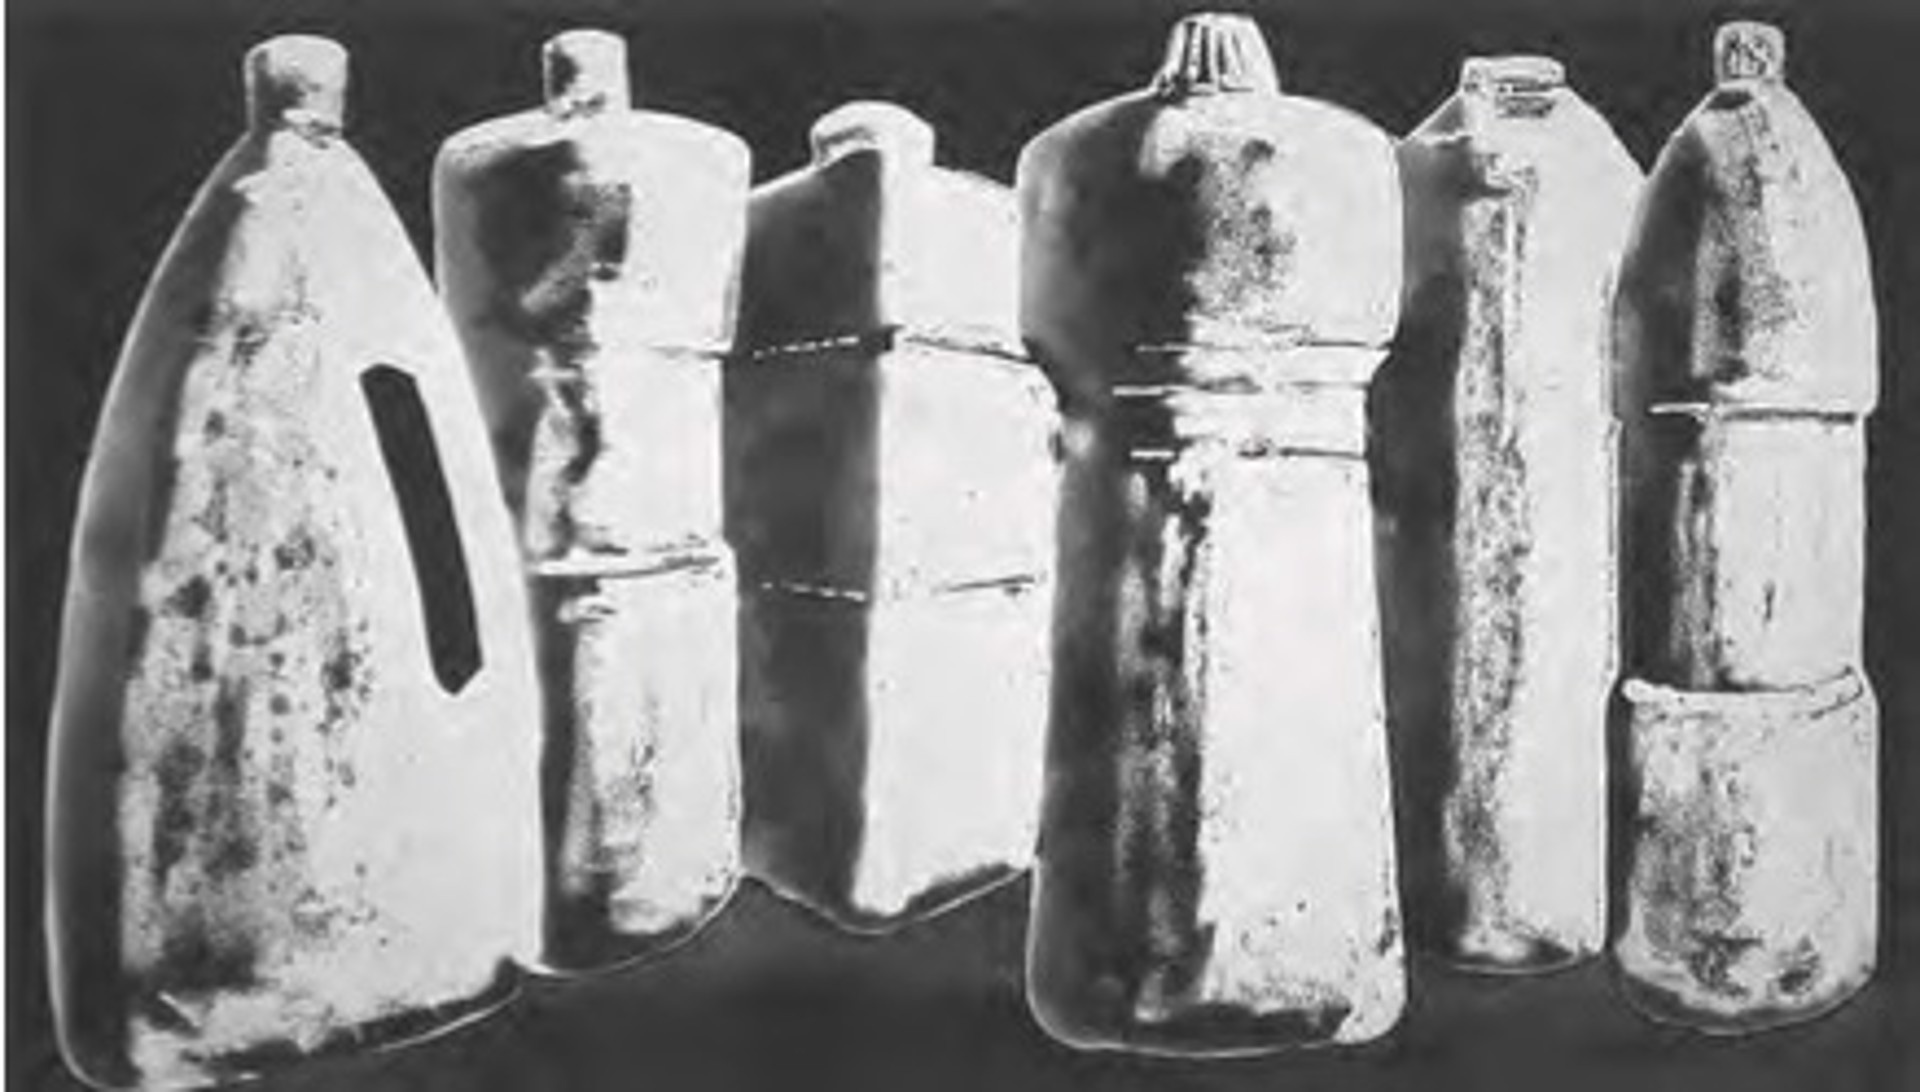 Six Bottles, State 1 by Tony Cragg